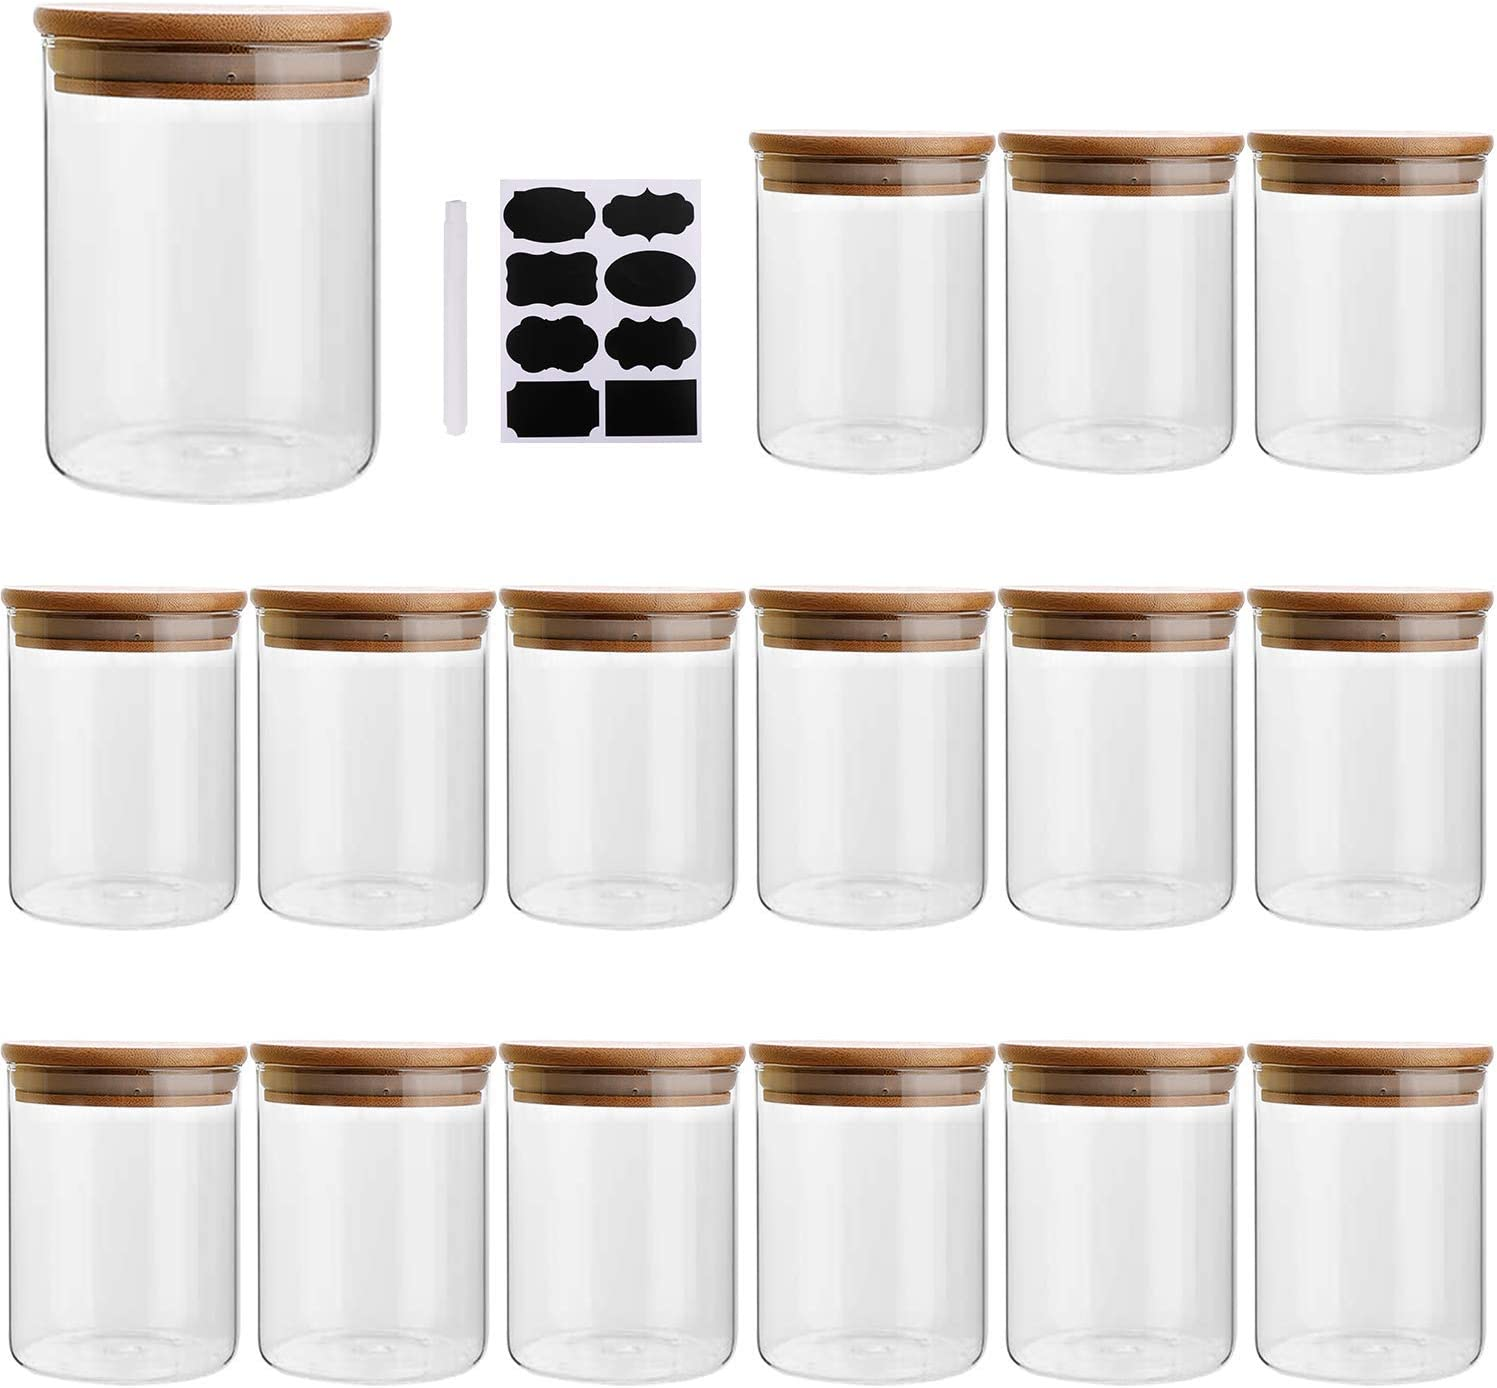 6oz/200ml Clear Glass Food Storage Containers Set Airtight Food Jars with Bamboo Wooden Lids Kitchen Canisters For Sugar, Candy, Cookie, Rice and Spice Jars - Set of 16